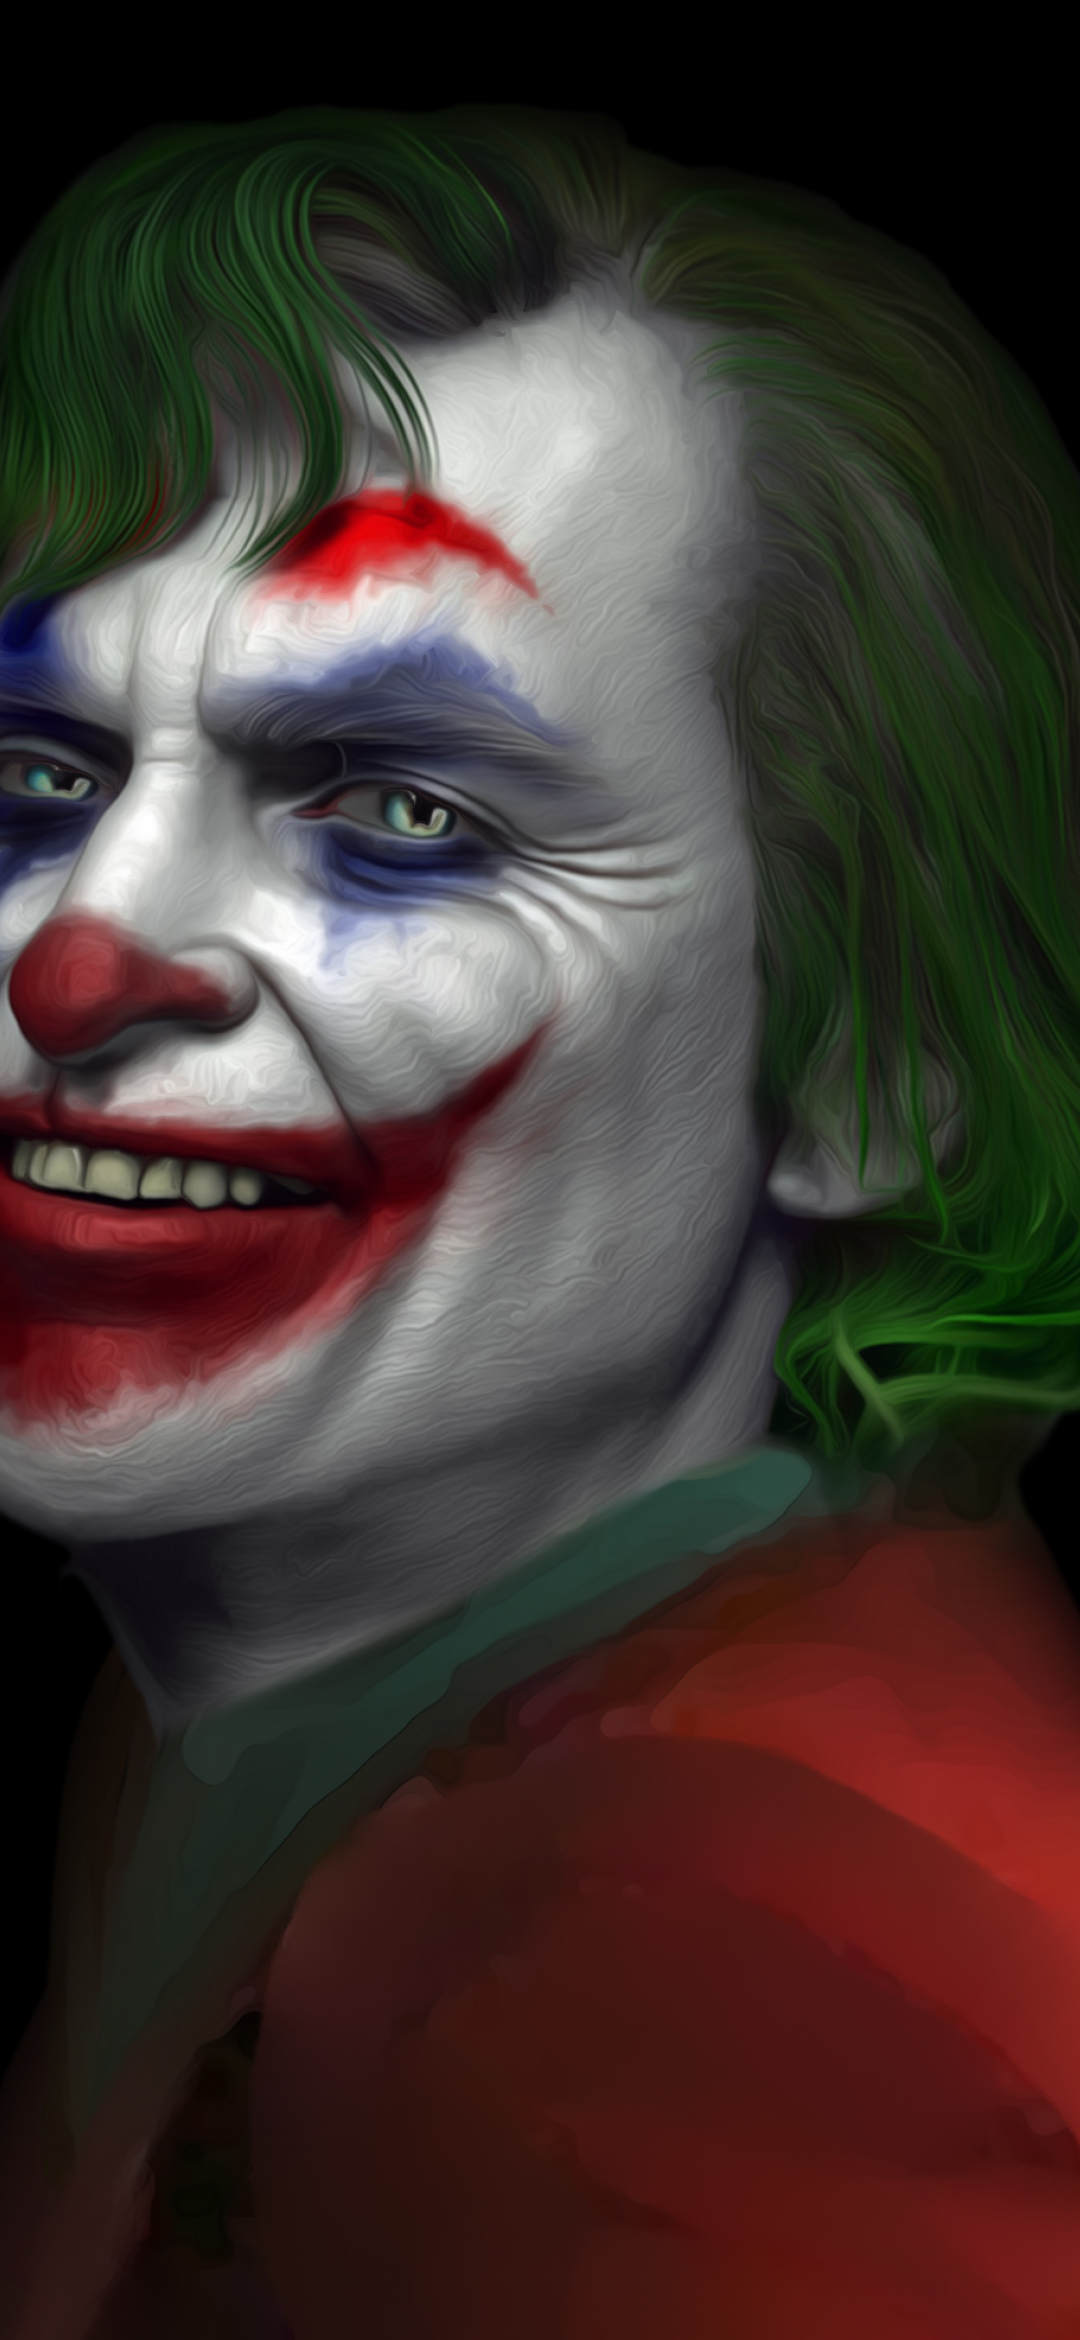 1080x2340 Joker Movie Art 1080x2340 Resolution Wallpaper Hd Movies 4k Wallpapers Images Photos And Background Download joker movie wallpaper for free in 1080x2340 resolution for your screen. 1080x2340 joker movie art 1080x2340